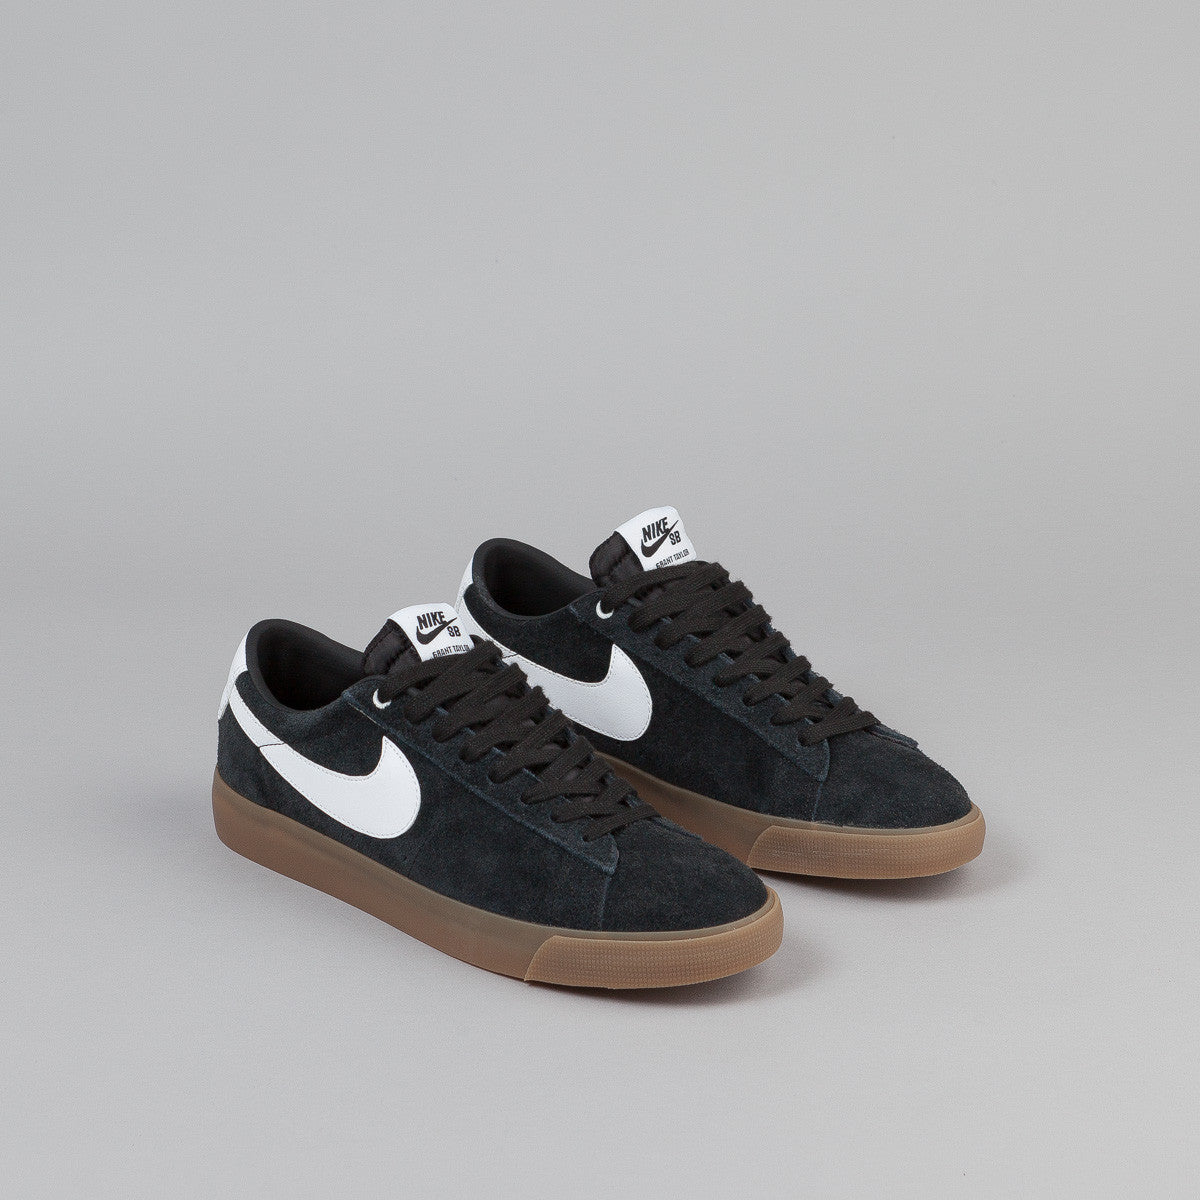 Nike Blazer Low extreme-hosting.co.uk